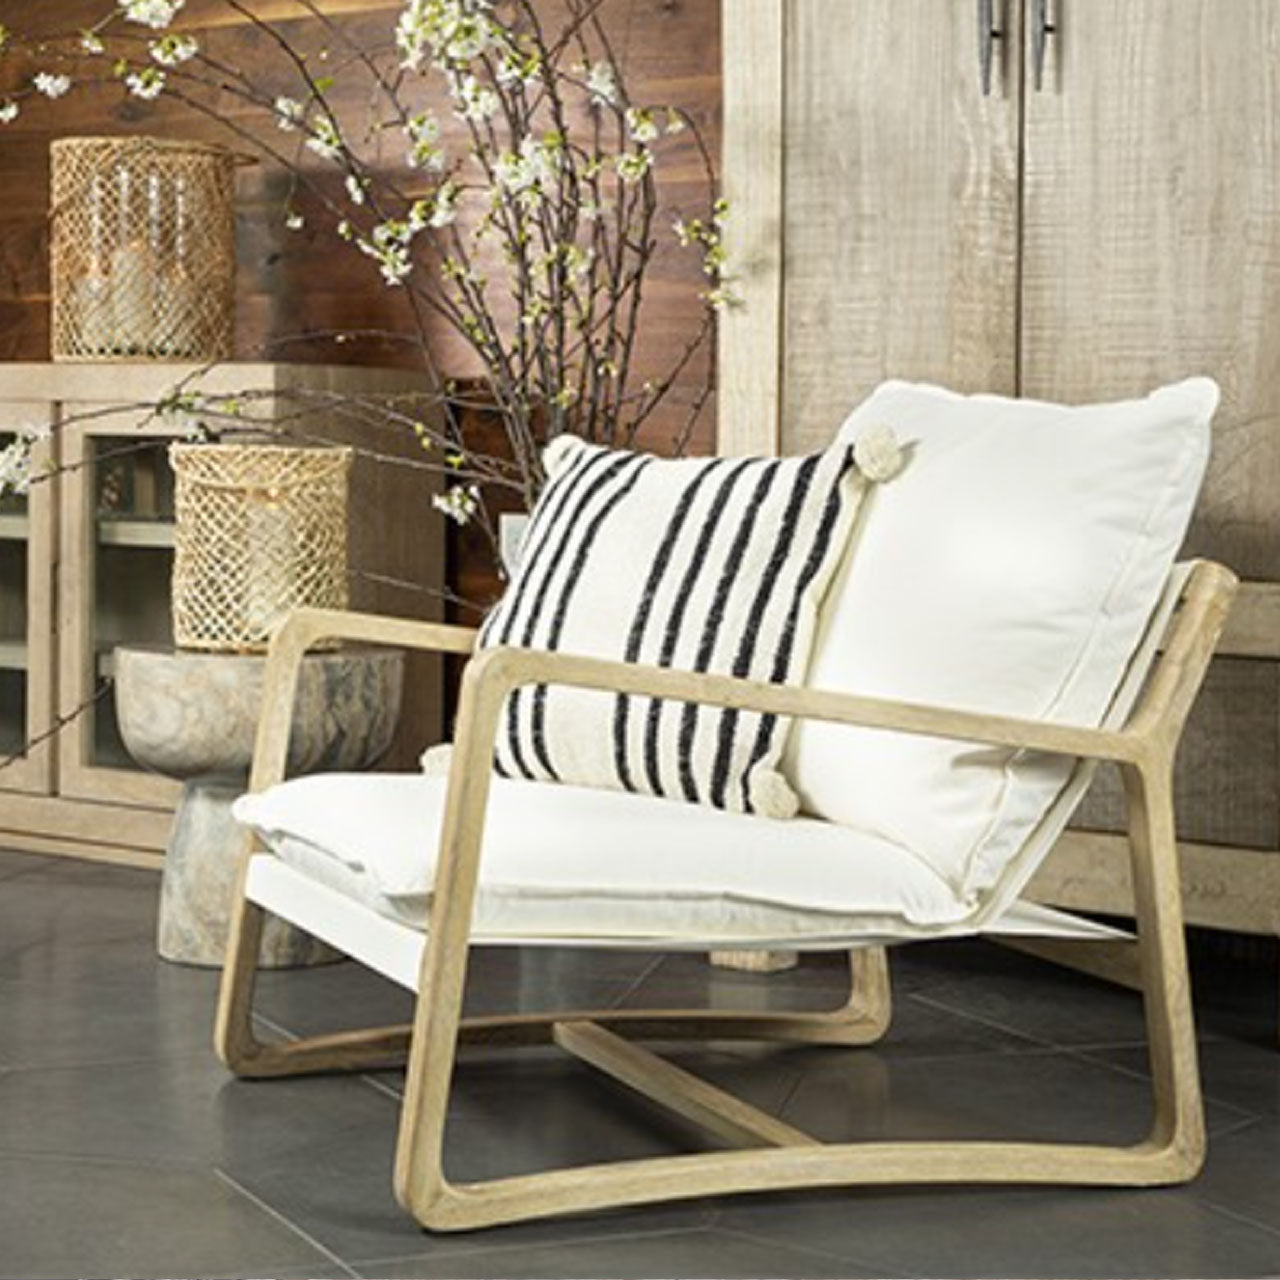 Tiffany Hunter Home & Design Center Occasional Chairs for Sale